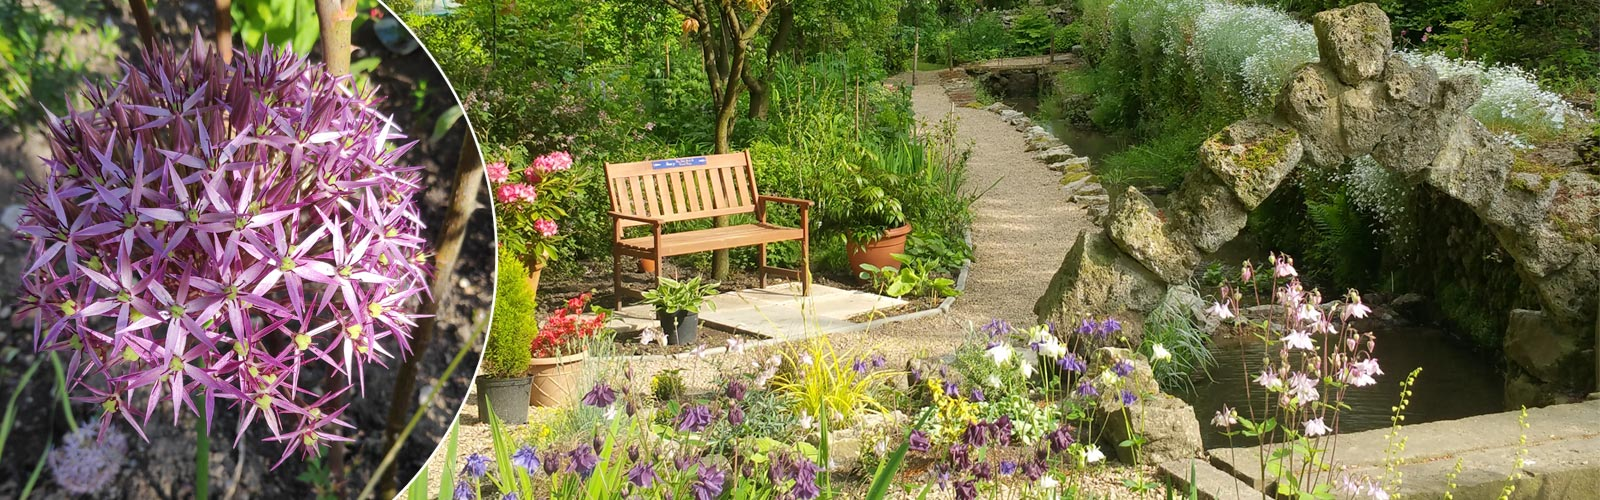 derbyshire garden for wellbeing and health